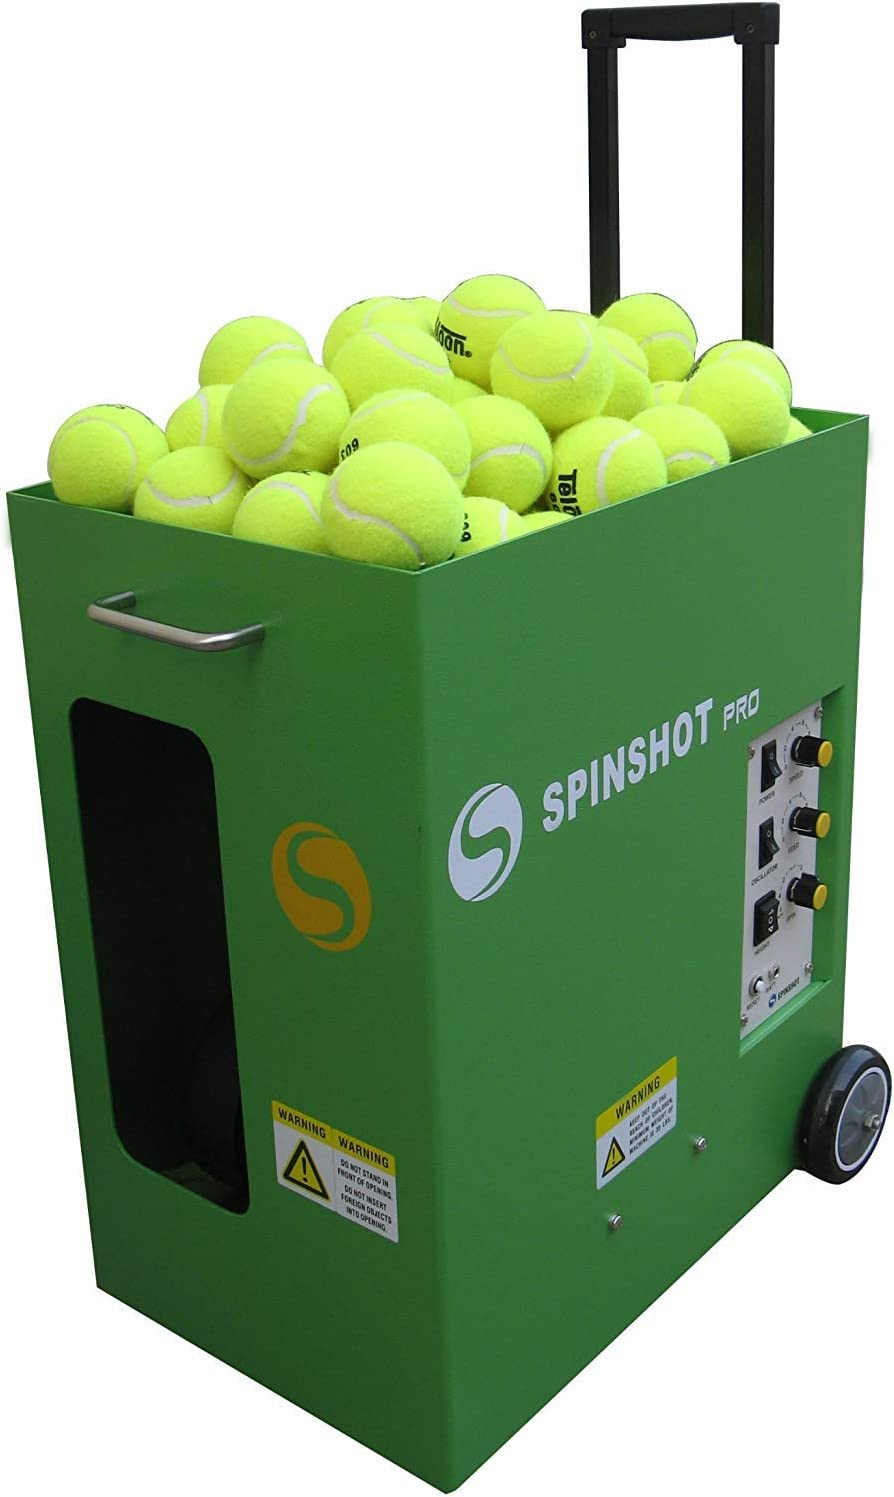 Spinshot Pro Tennis Ball Machine (The Best Model for Easy Use) : Sports & Outdoors